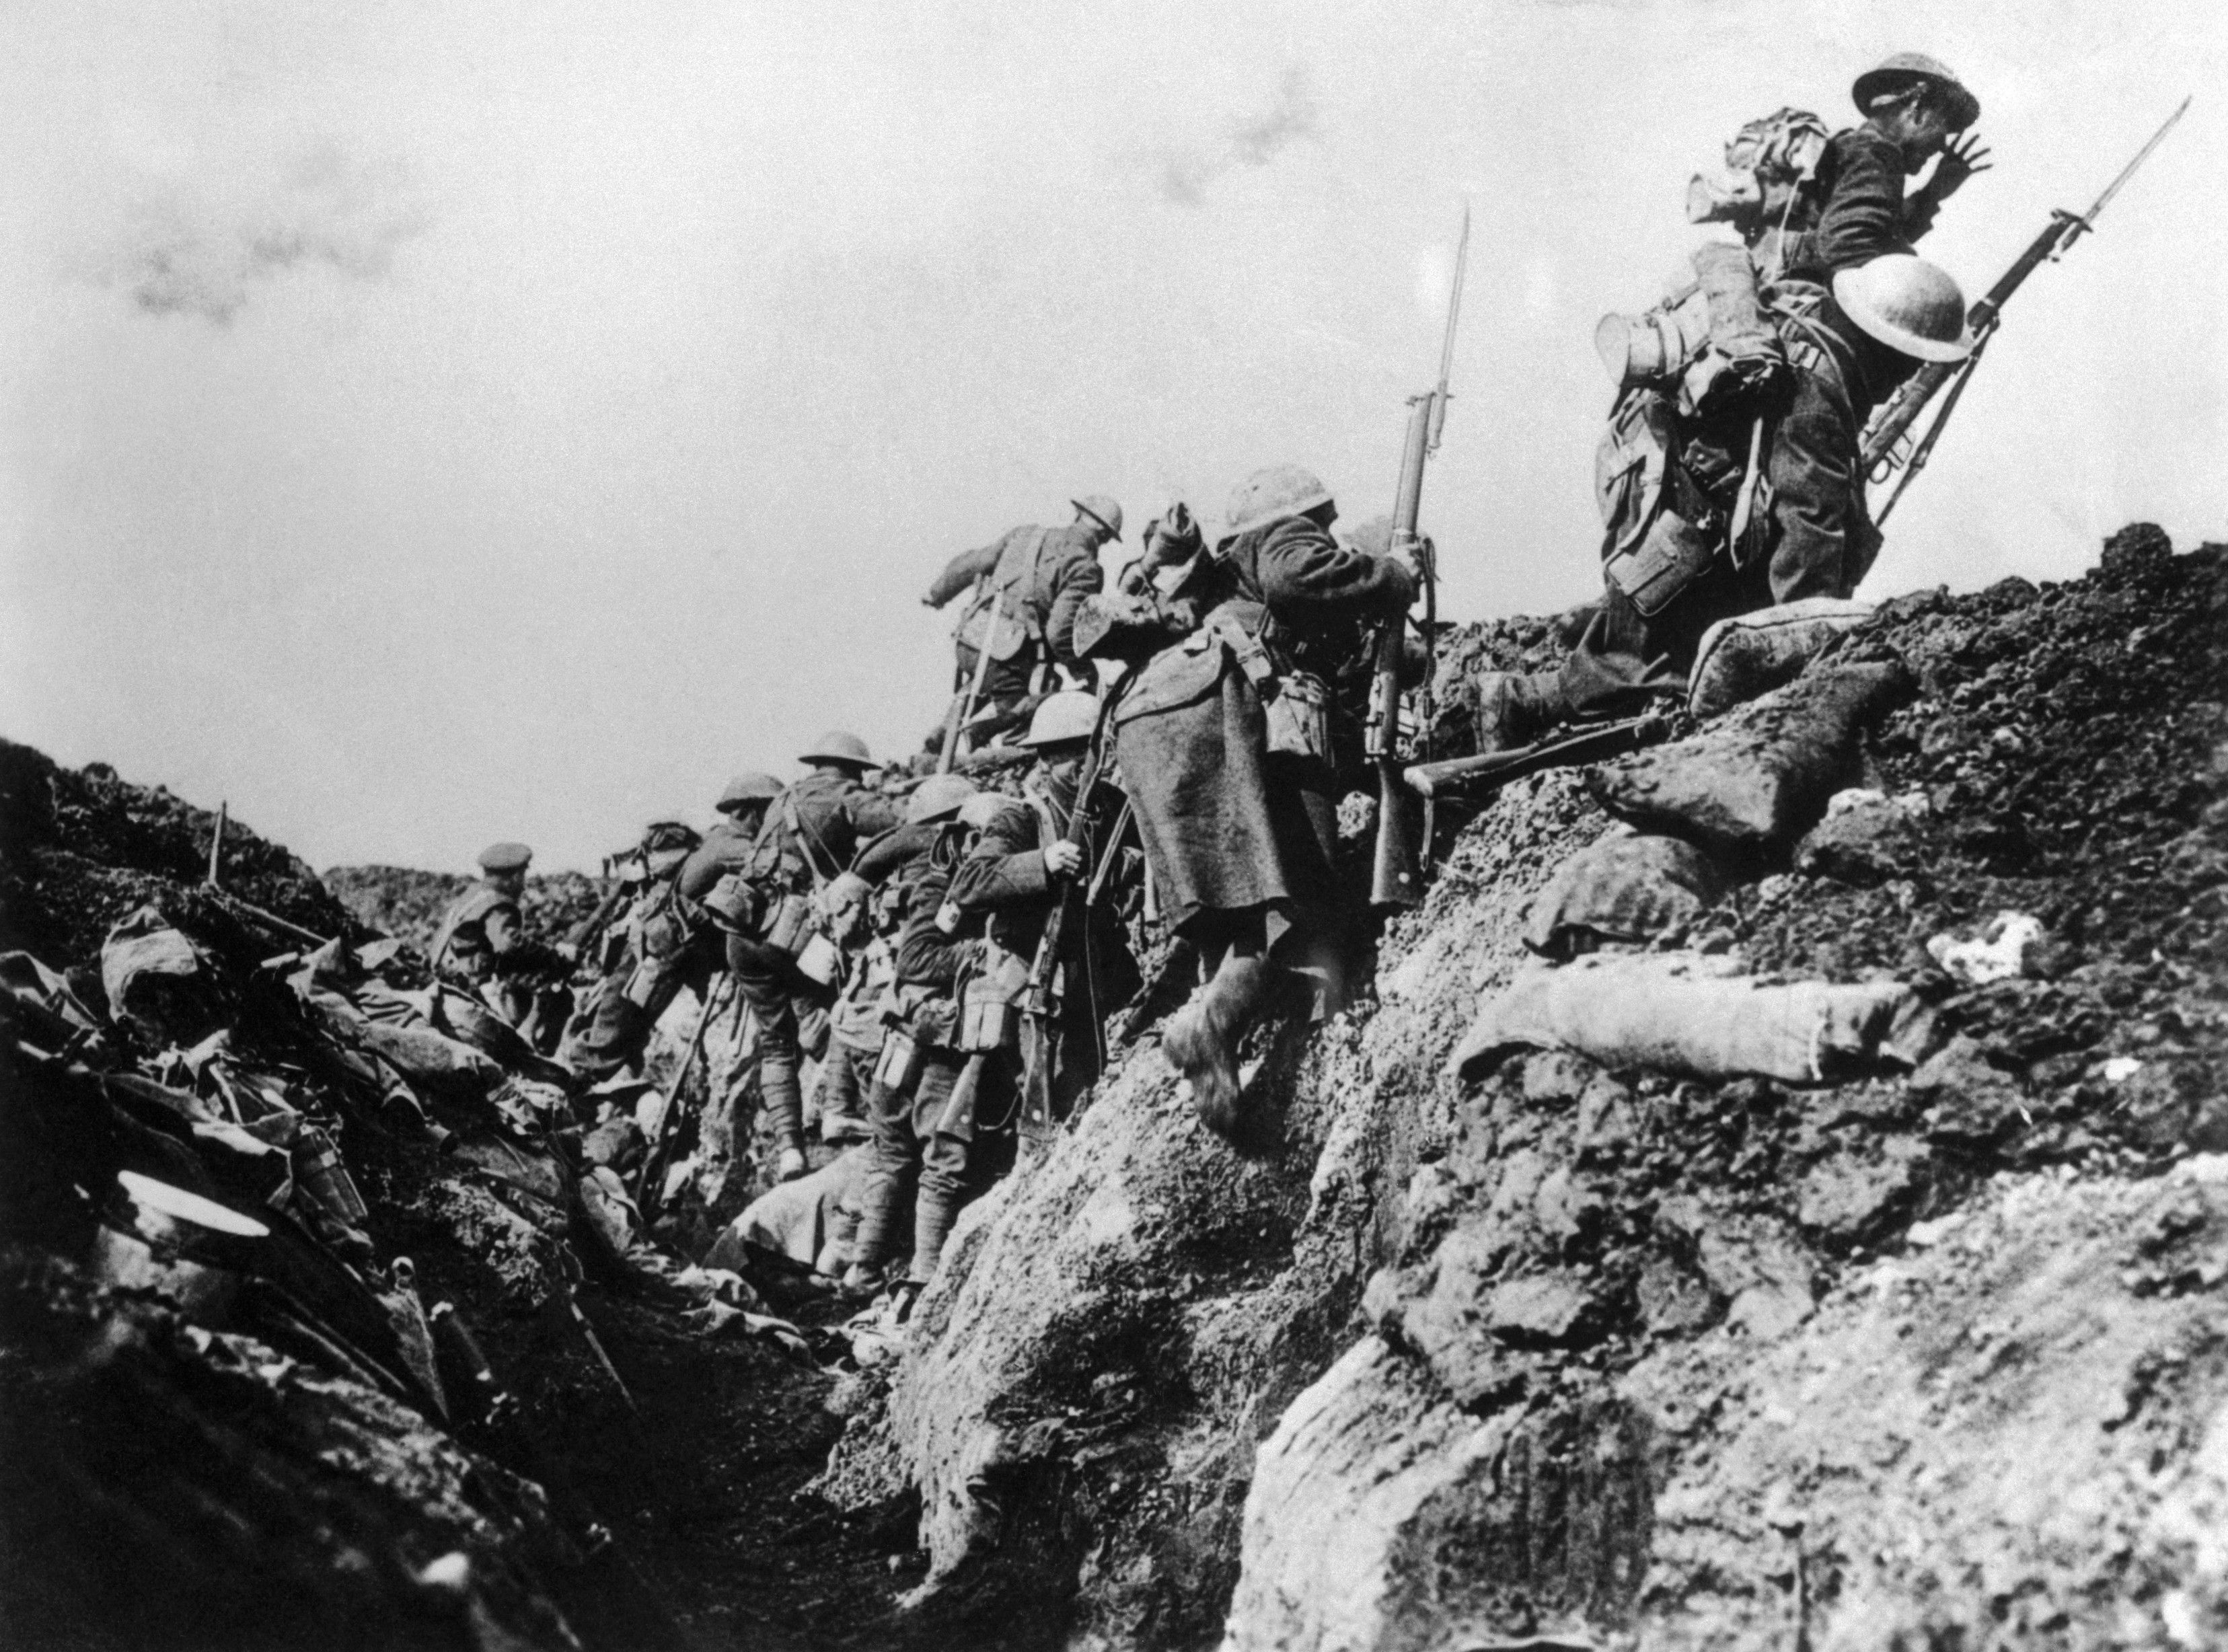 world war 1 trench warfare Trench foot was more of a problem at the start of trench warfare as conditions improved in 1915 it rapidly faded, although a trickle of cases continued throughout the war the trench cycle typically, a battalion would be expected to serve a spell in the front line.